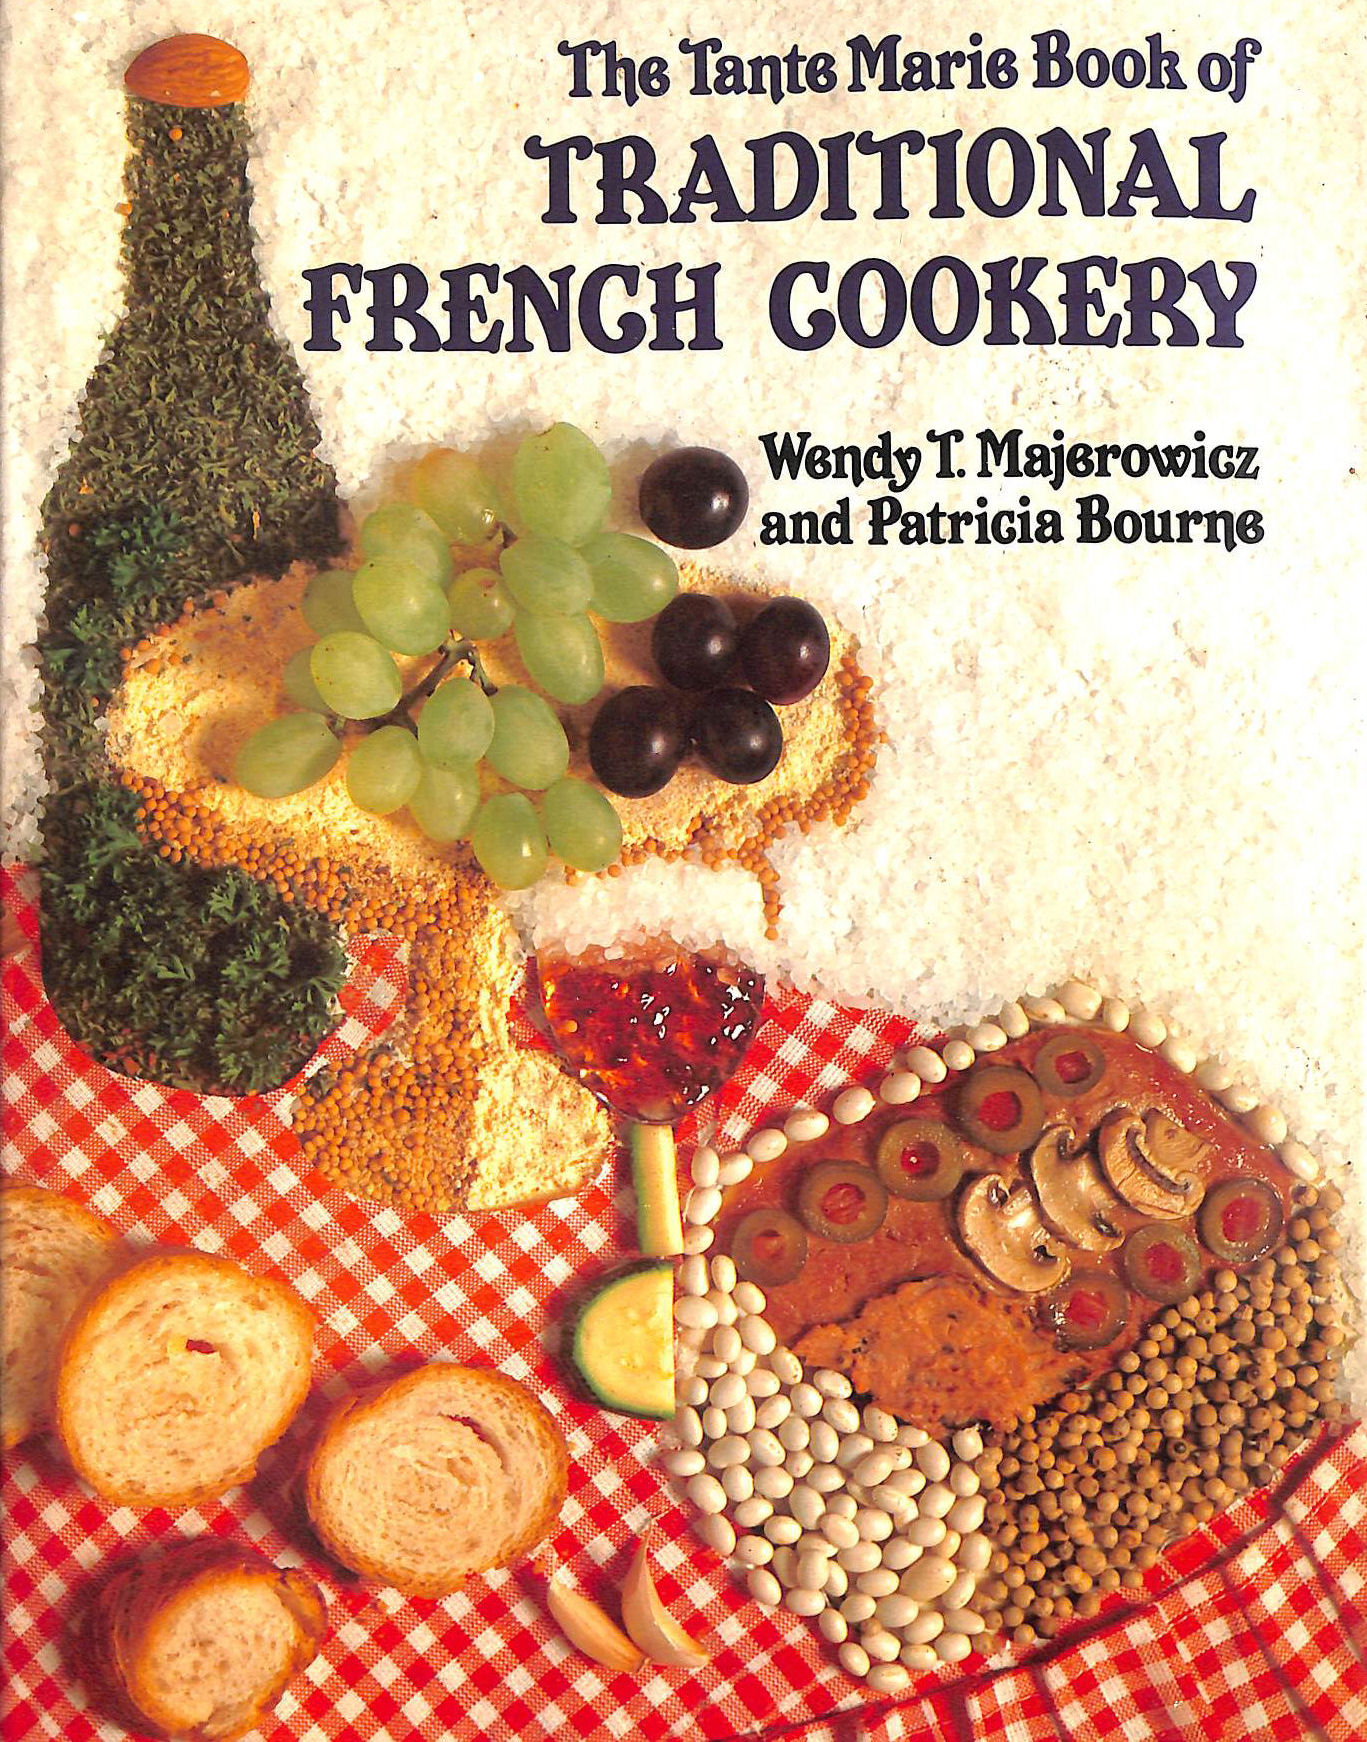 Image for Tante Marie Book of Traditional French Cookery